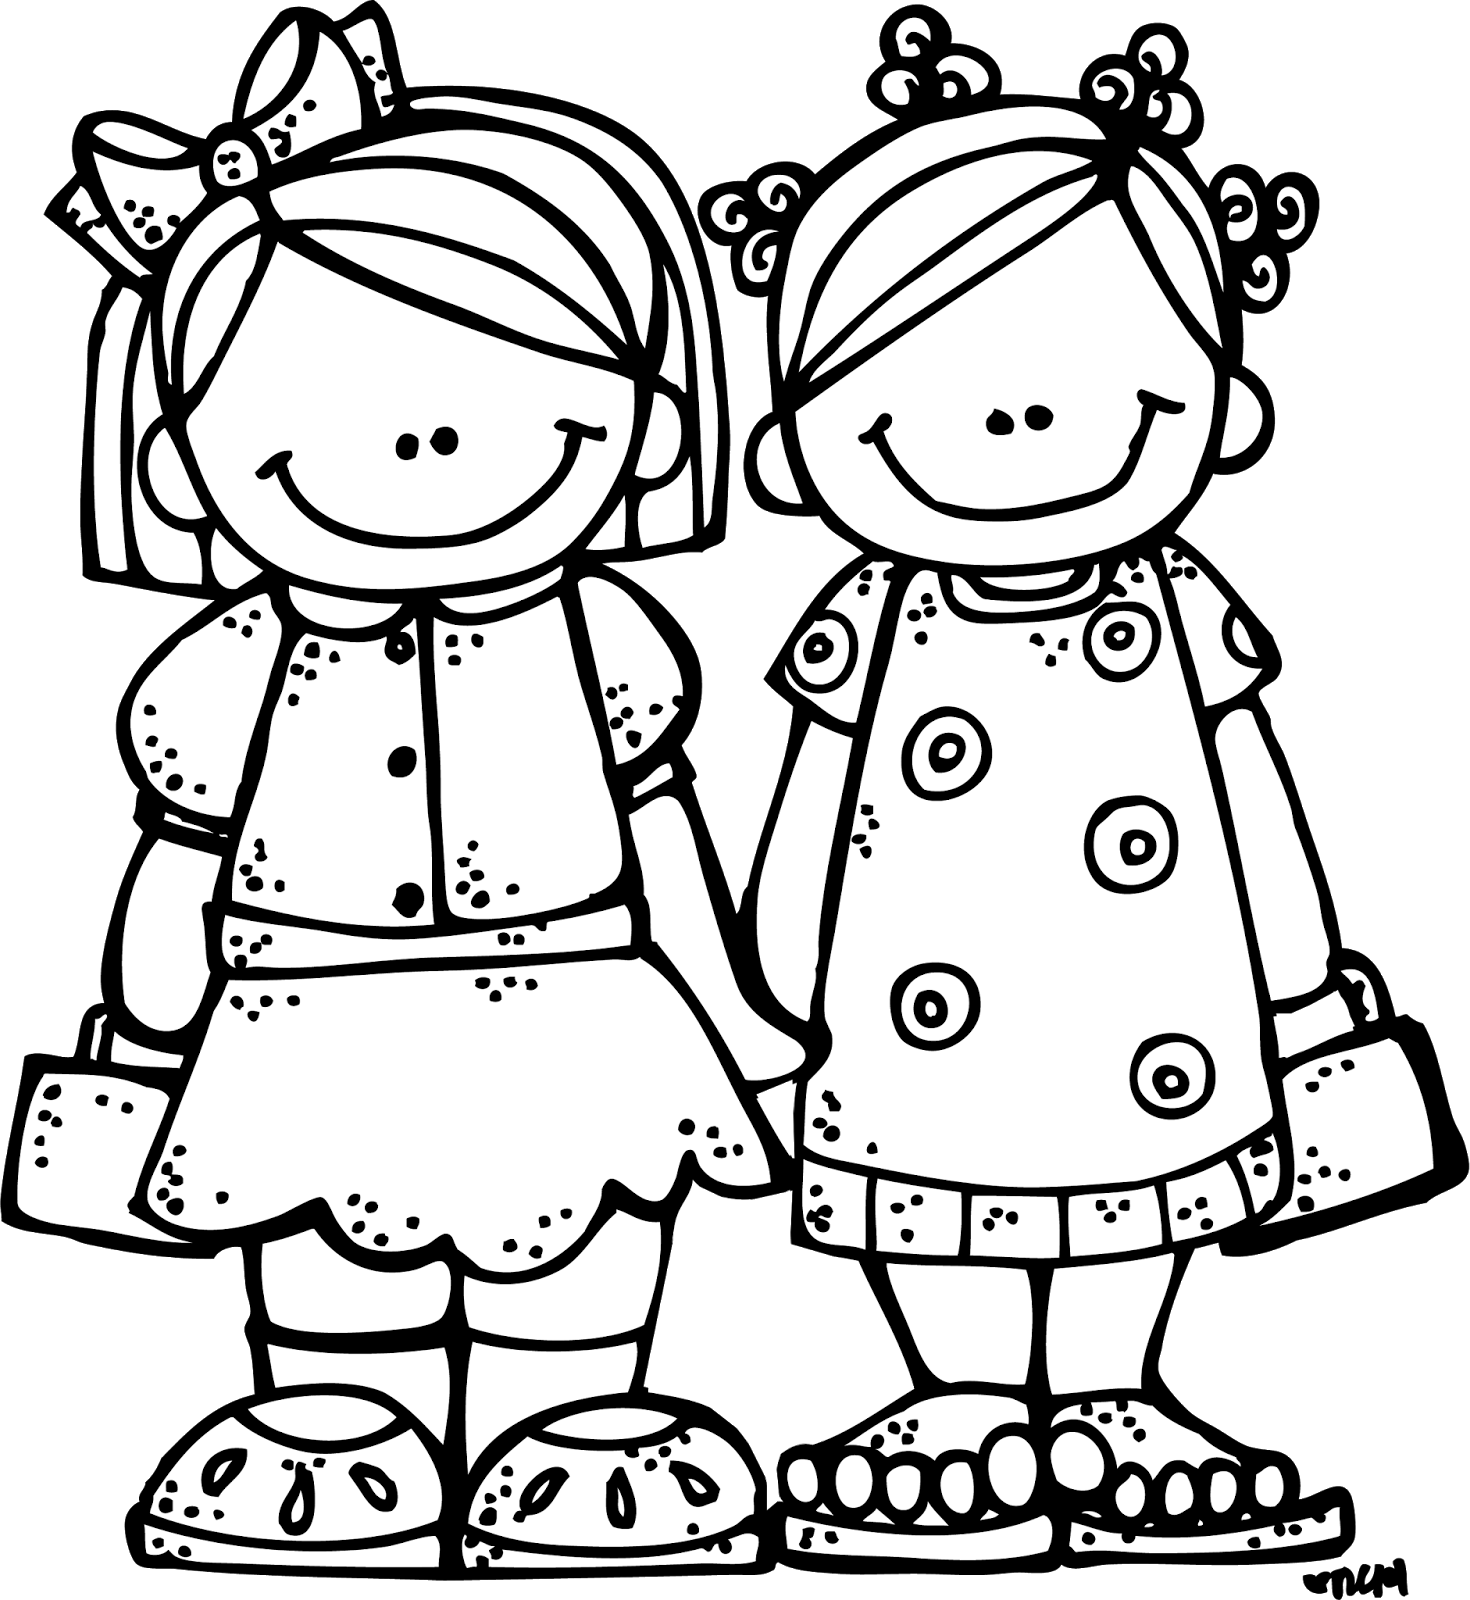 Black and white clipart lds children all around the world jpg black and white download Several drawings of children can be found here - Melonheadz ... jpg black and white download